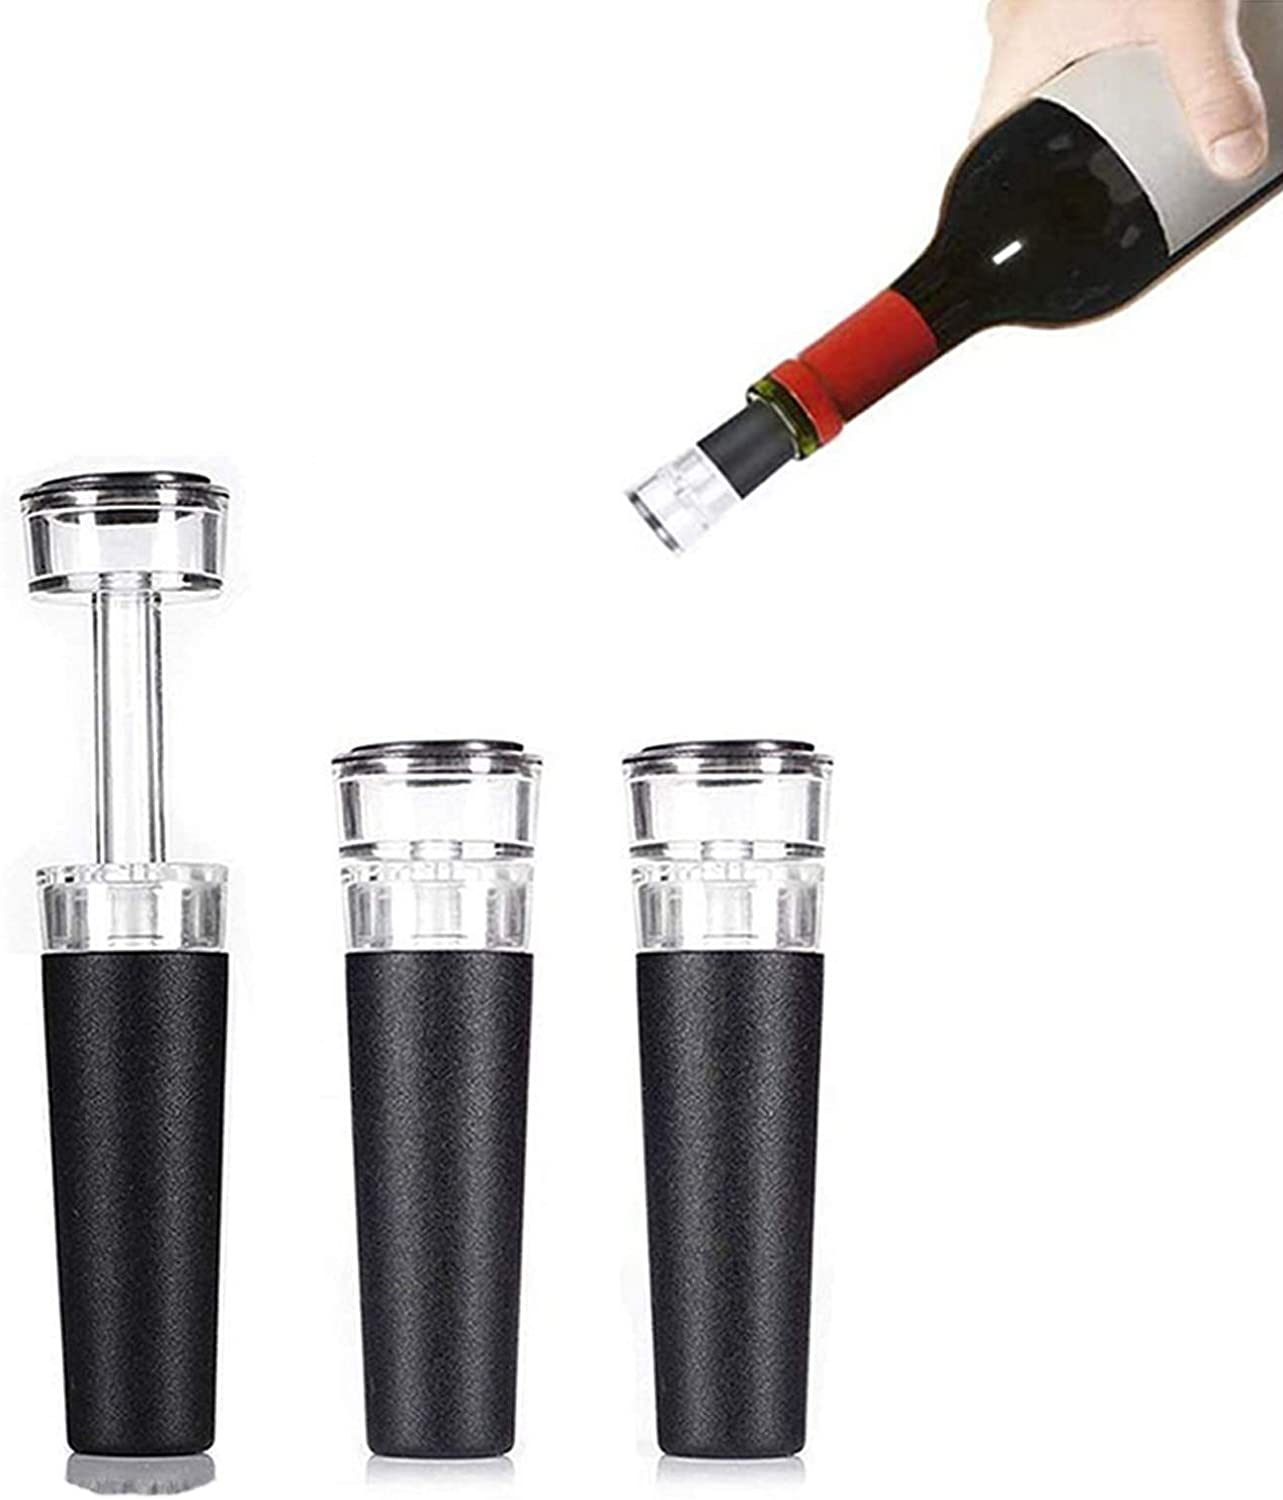 3-Piece Vacuum Wine Stopper, Wine Bottle Stopper, Reusable Wine Stopper Food Silicone Material Can Keep Fresh And Sealedvery Suitable For Wine Lovers